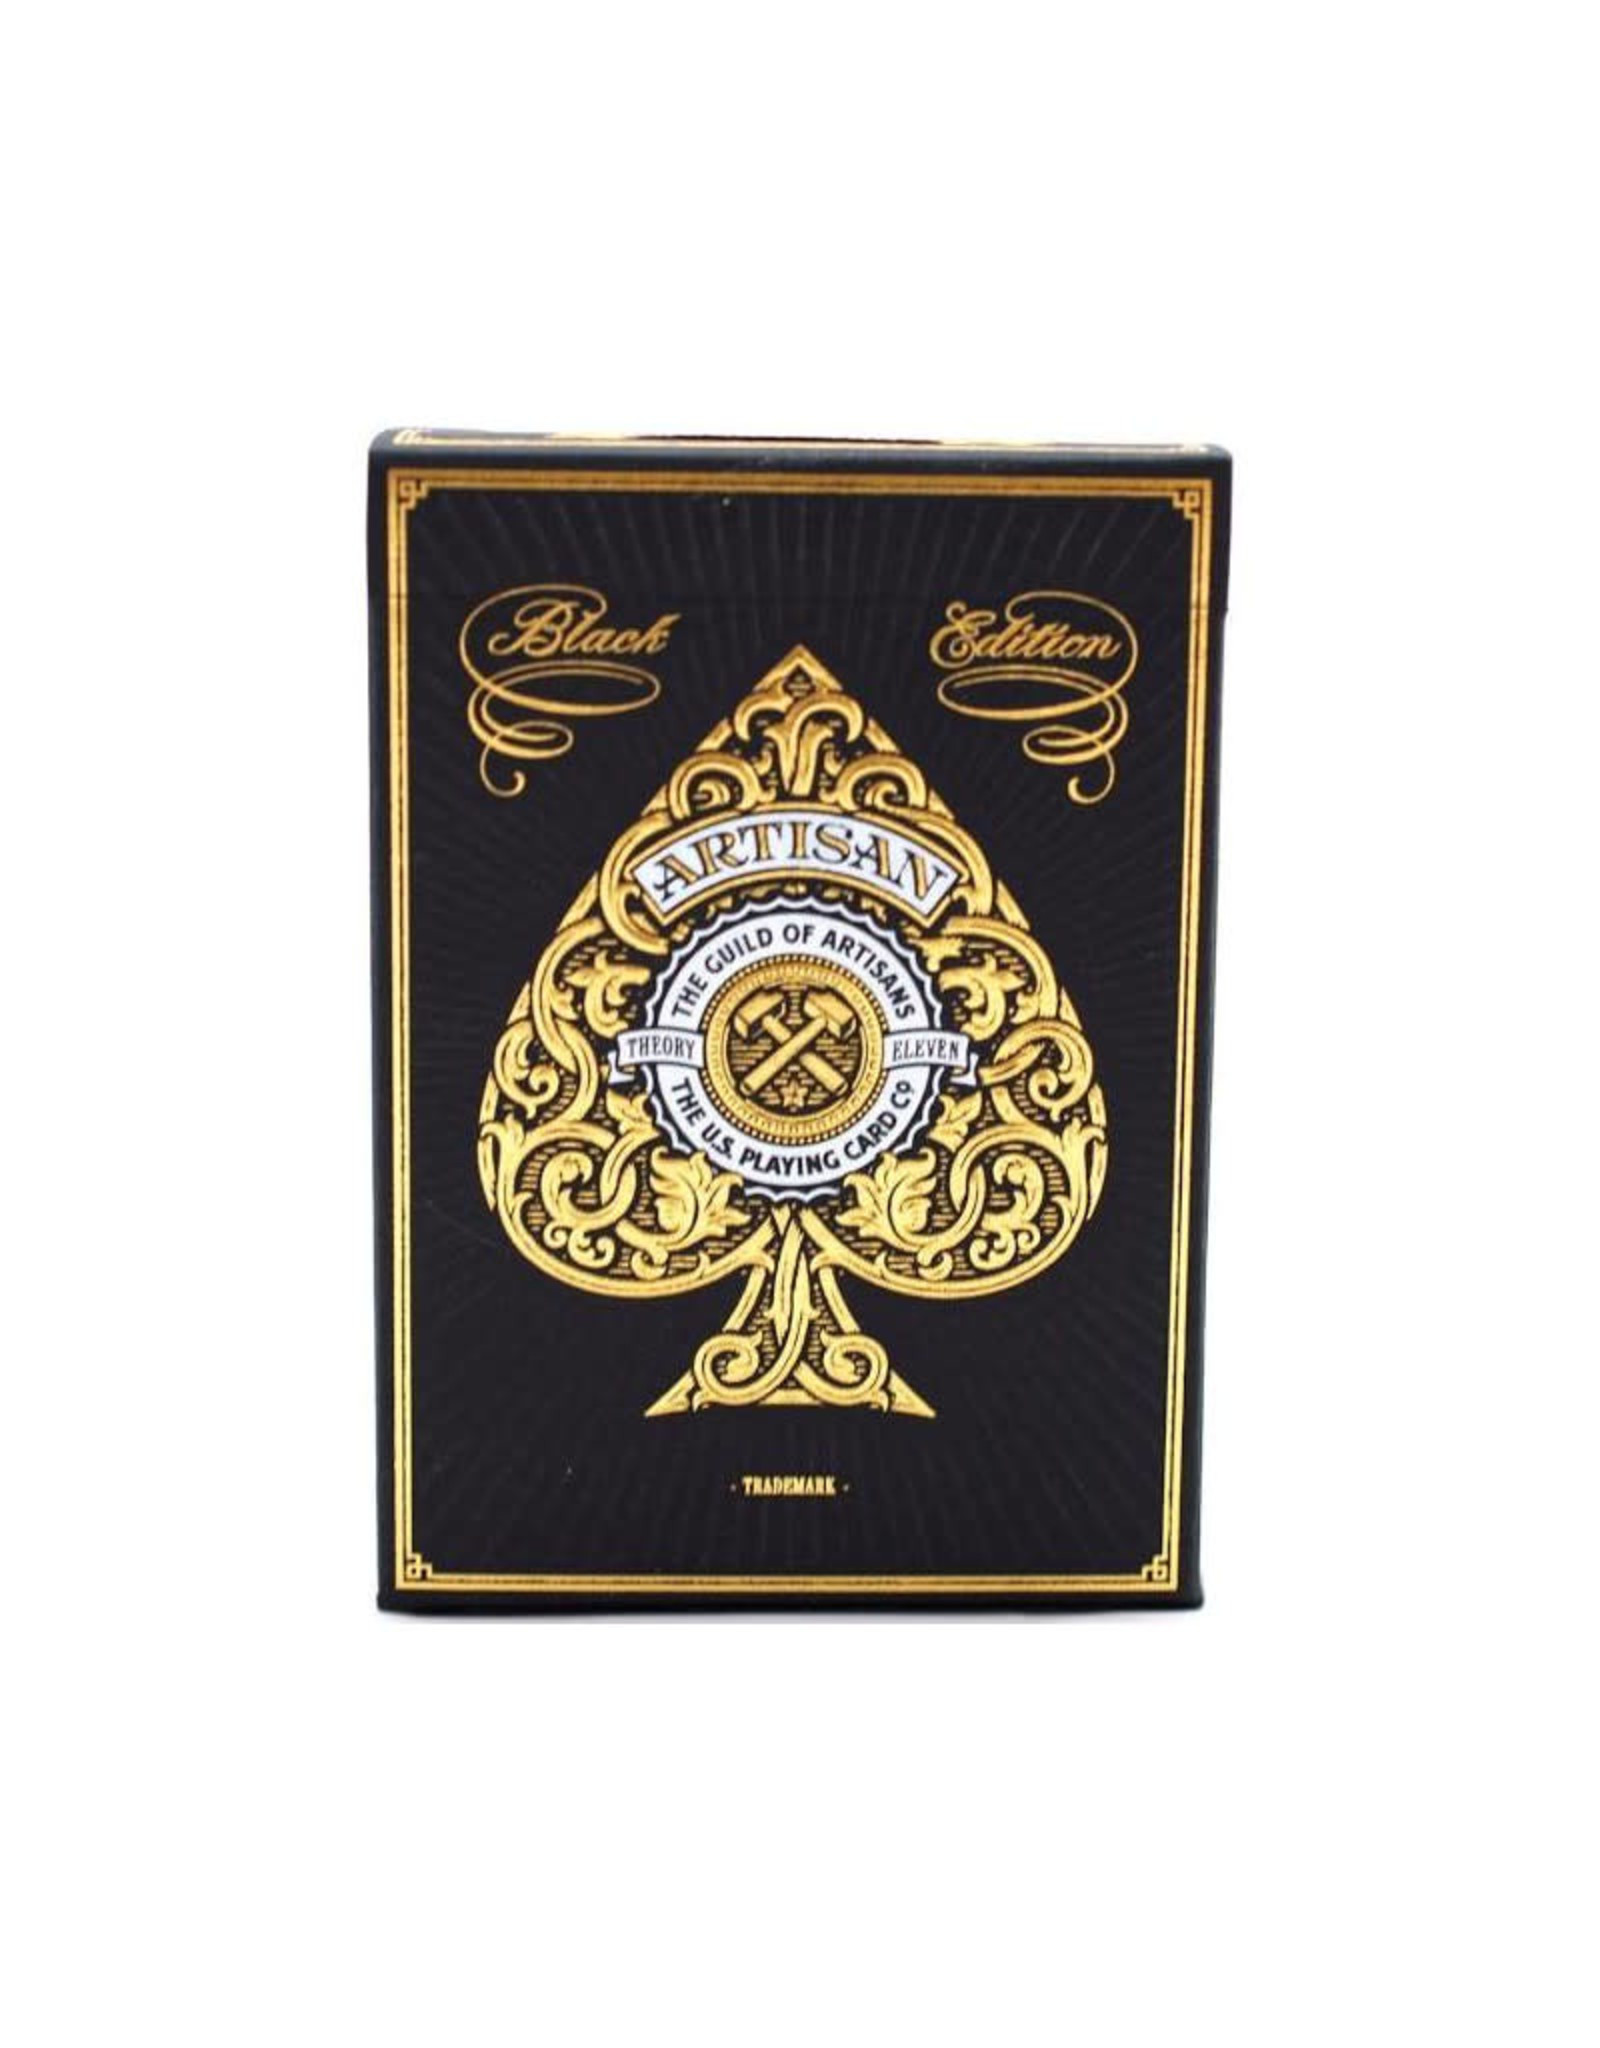 United States Playing Card Co Playing Cards: Bicycle Theory11 Artisans (Black or White)